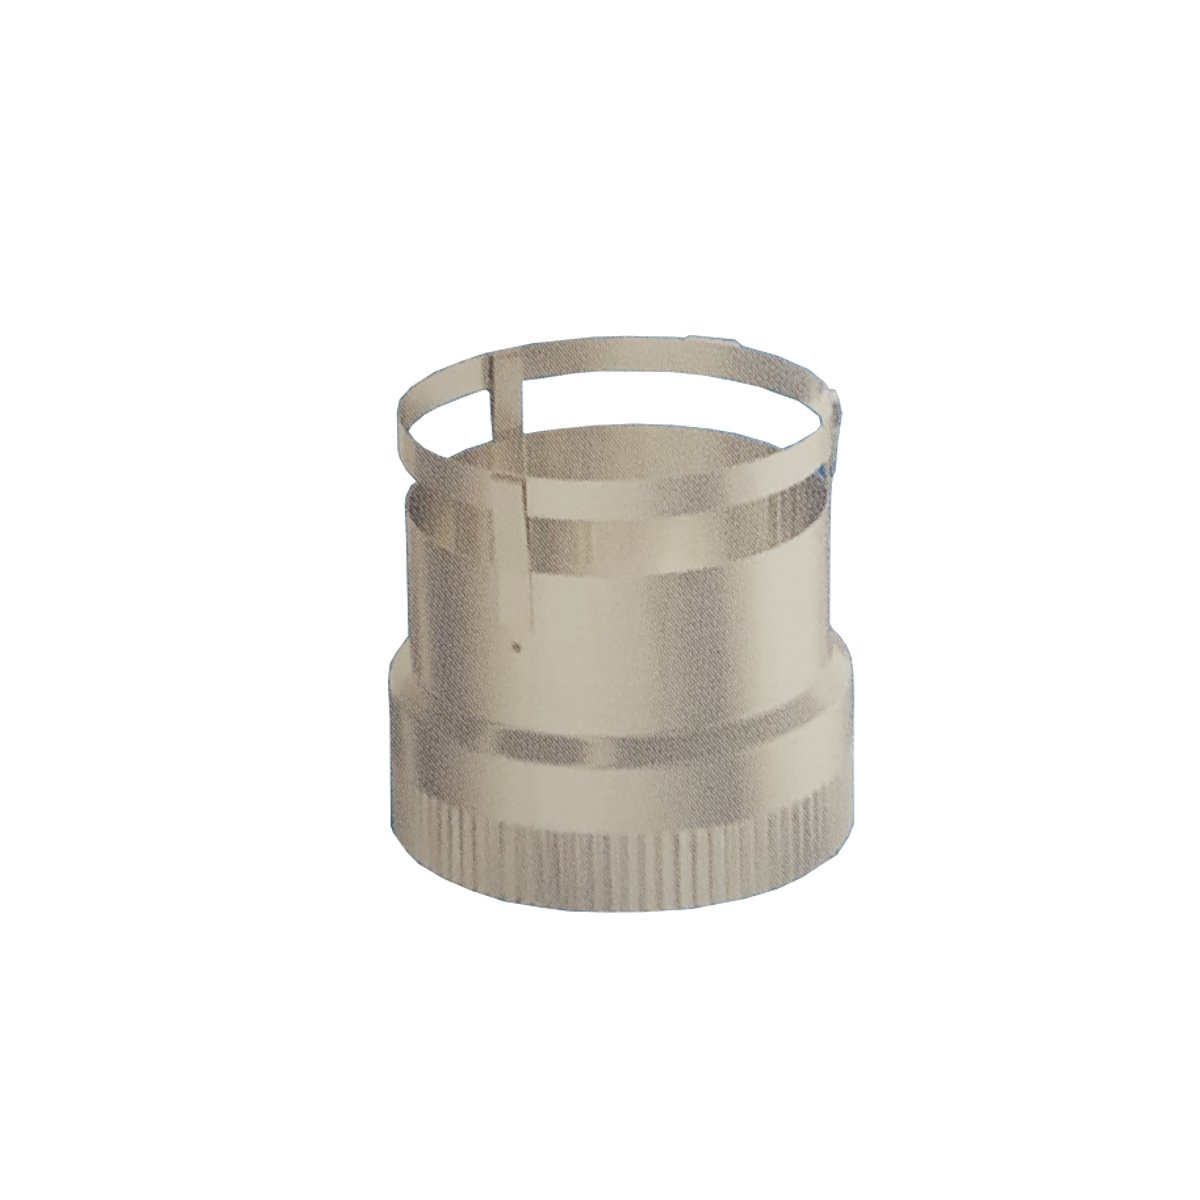 Rockford Chimney Supply Flexible Chimney Liner Reducer from 6 Insert to 5 Flexible Liner